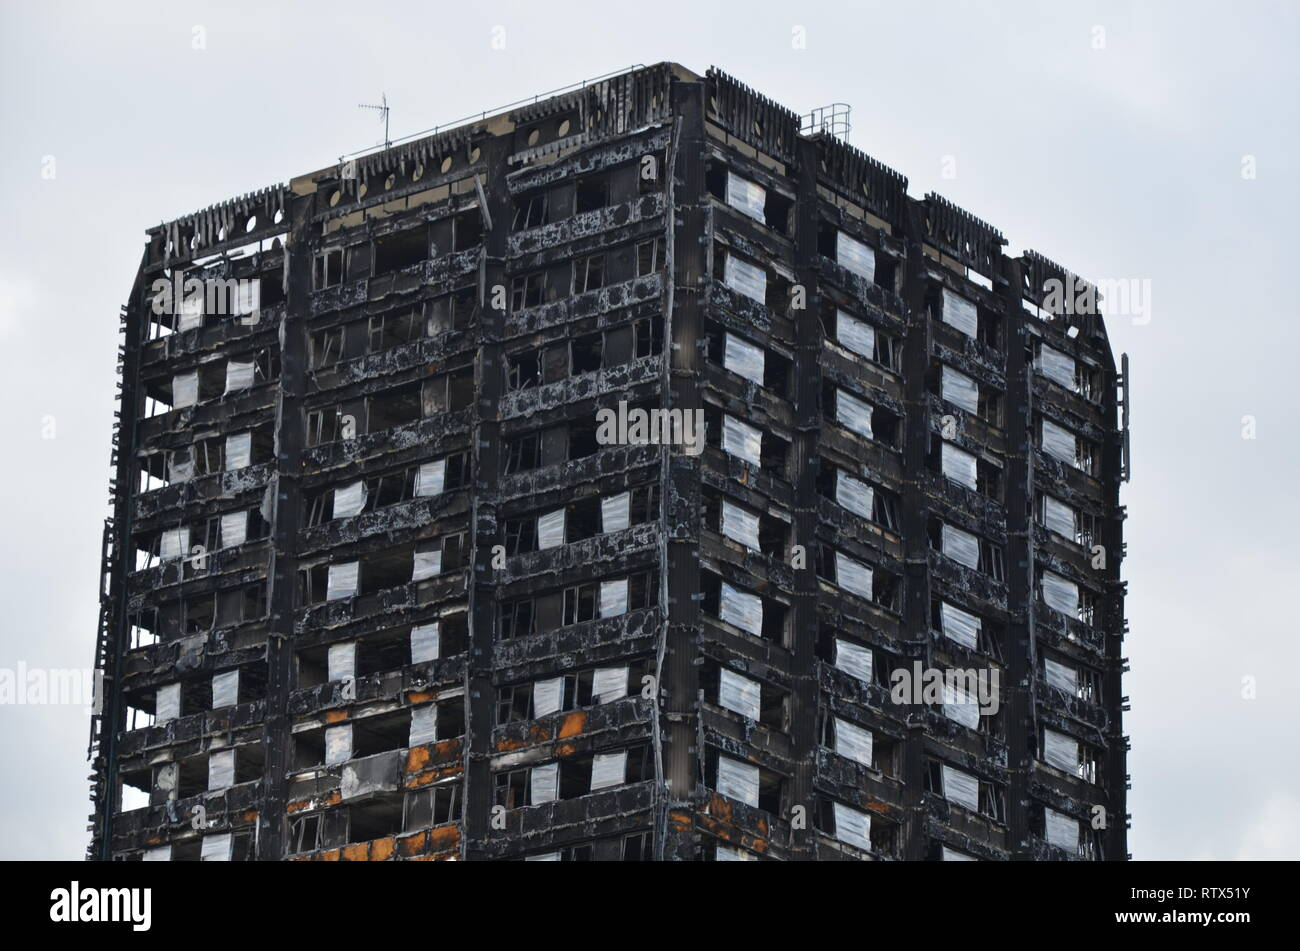 Grenfell tower fire, London, disaster zone - Stock Image